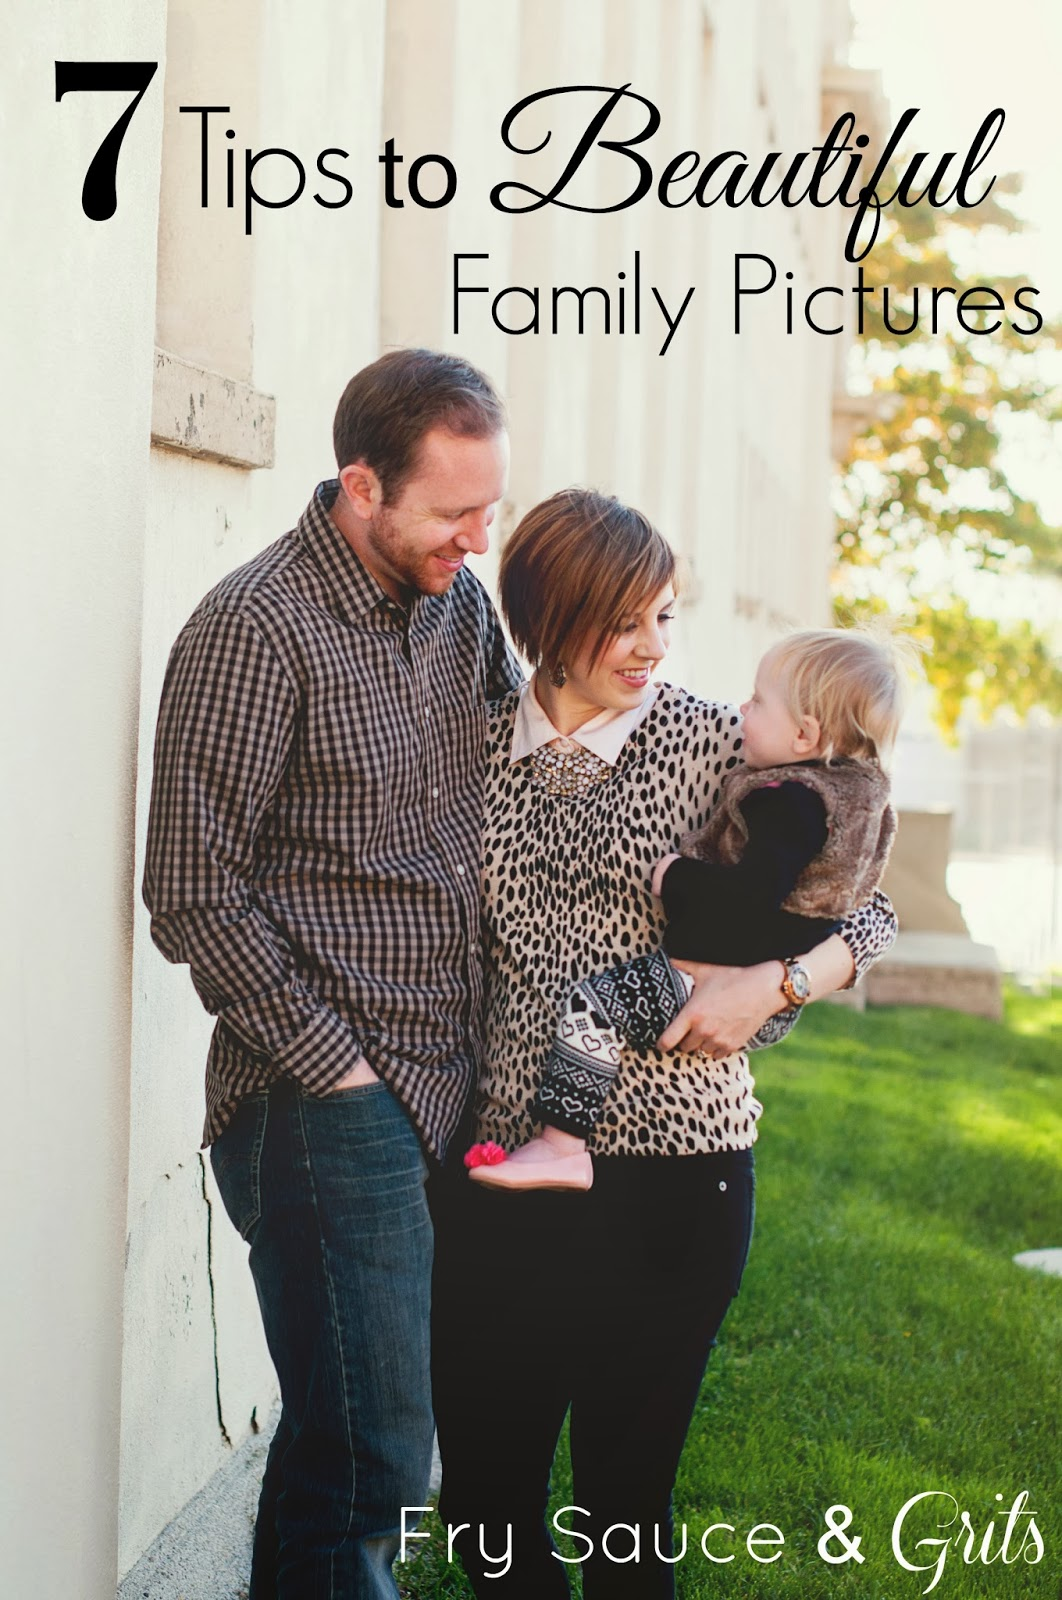 7 Tips to Beautiful Family Pictures from FrySauceandGrits.com